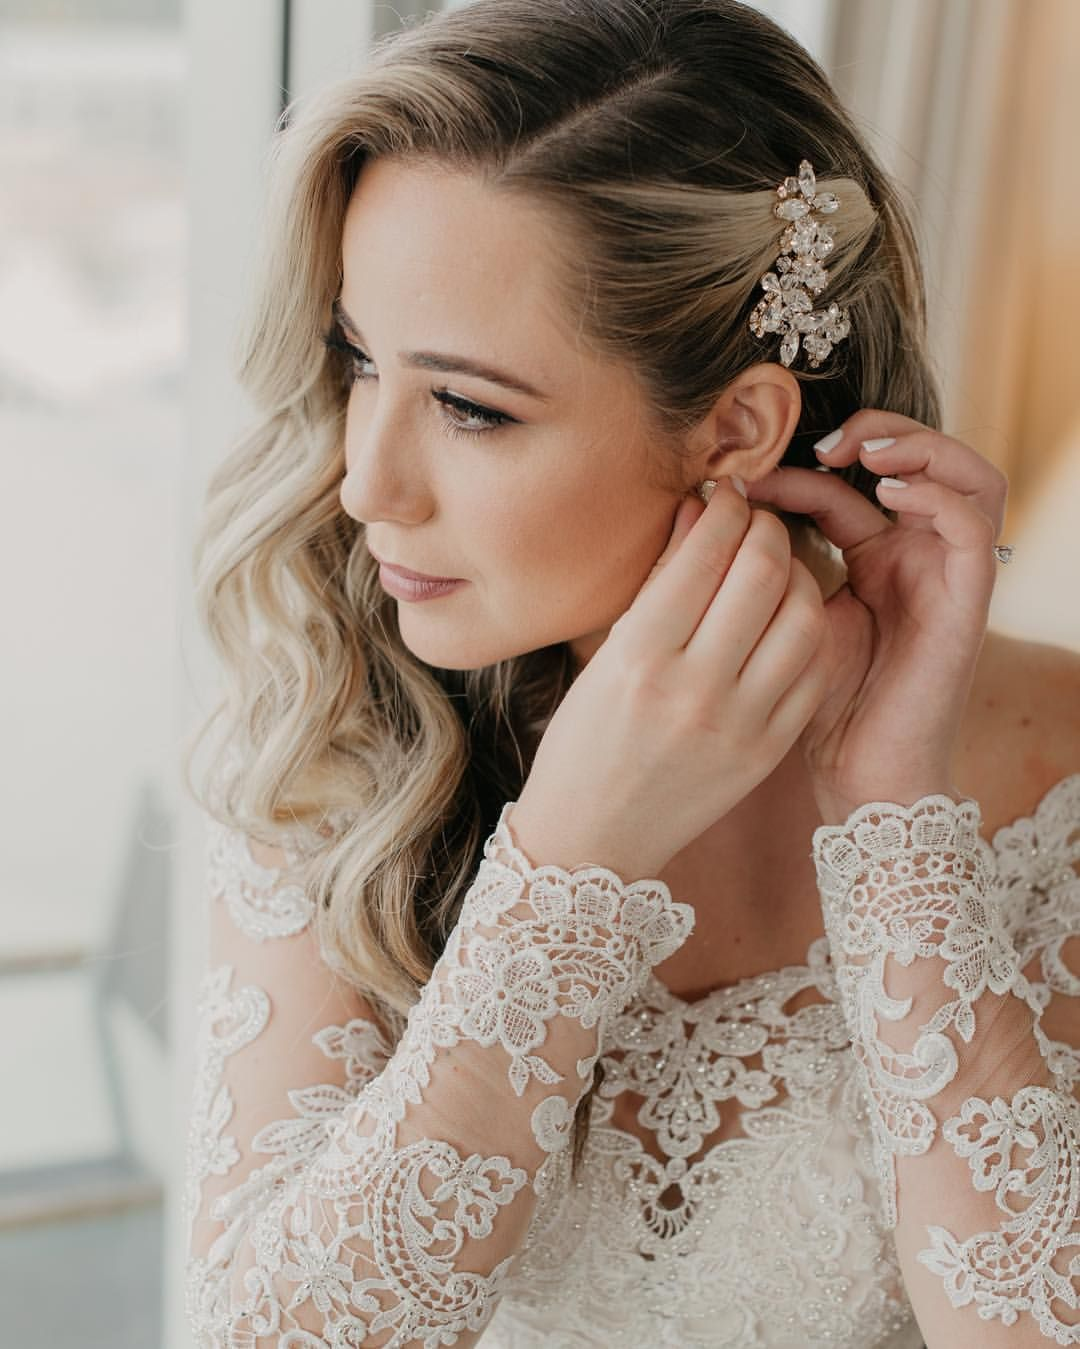 29 Cool Wedding Hairstyles For The Modern Bride: Bridal Makeup And Side Swept Curls